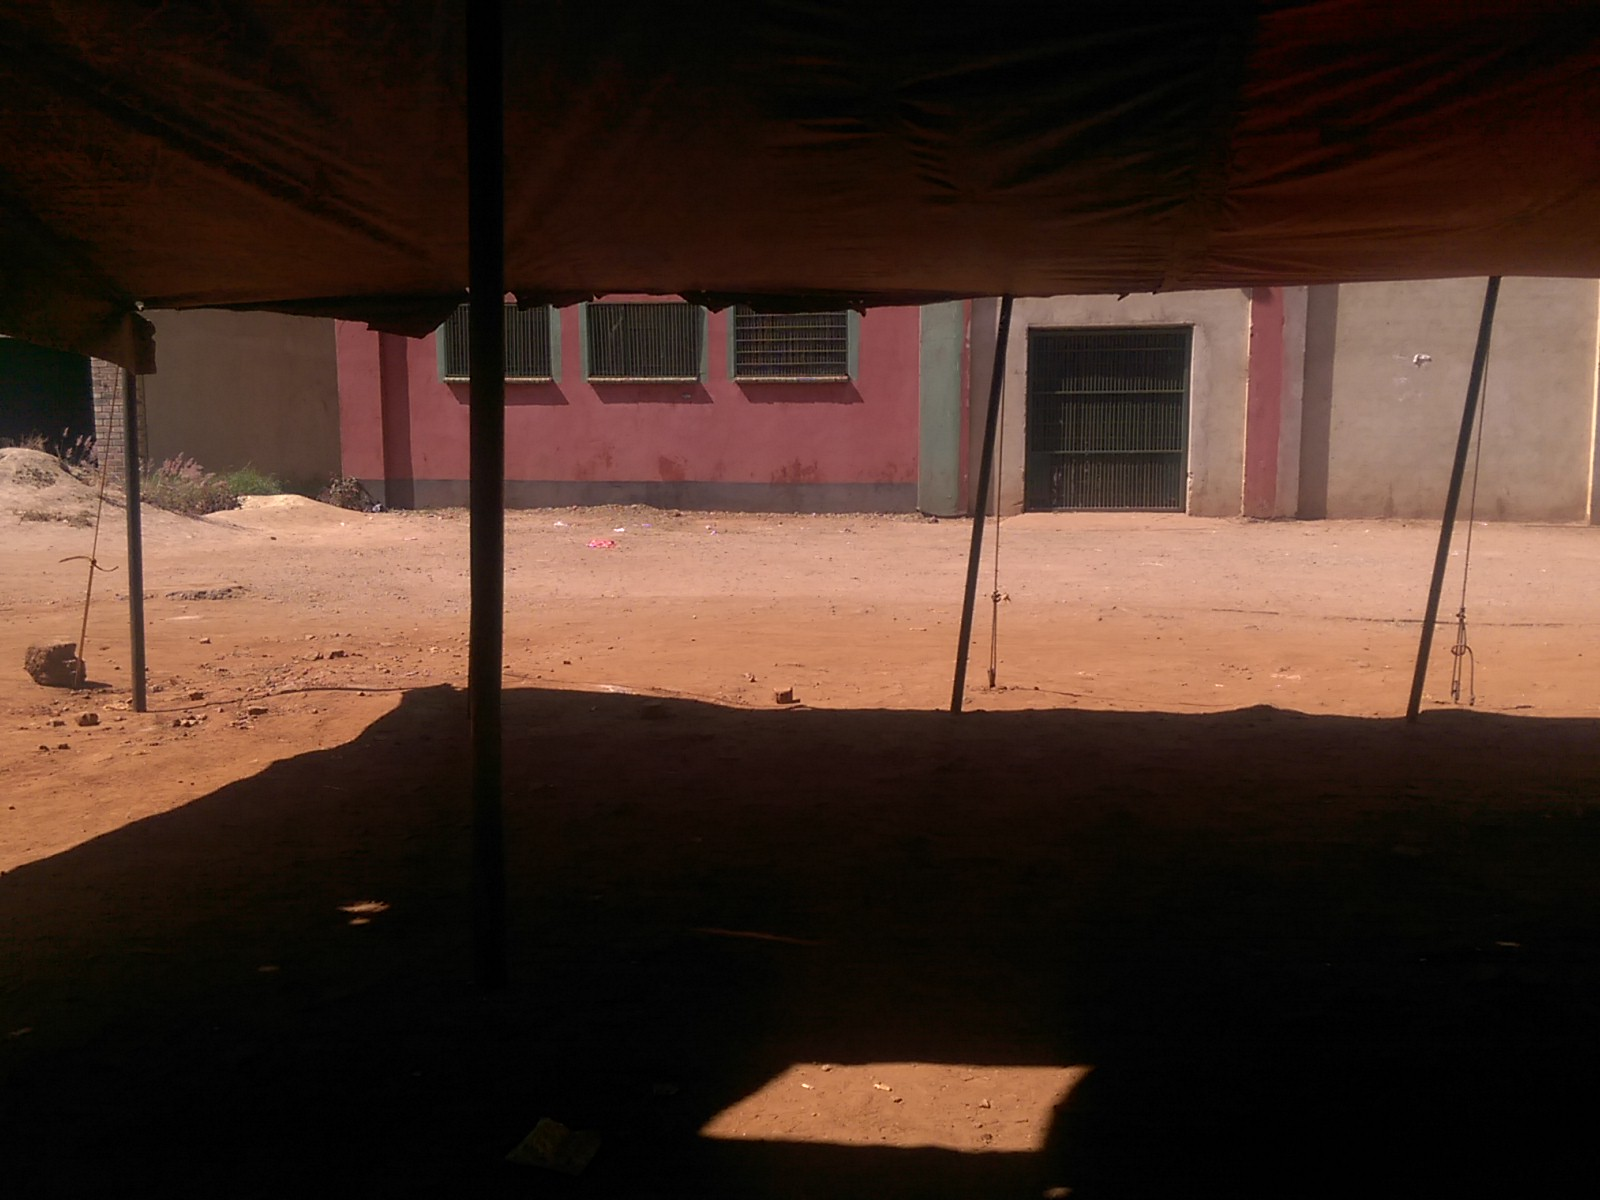 Under an orange-tinged awning that casts shadow on the sandy ground